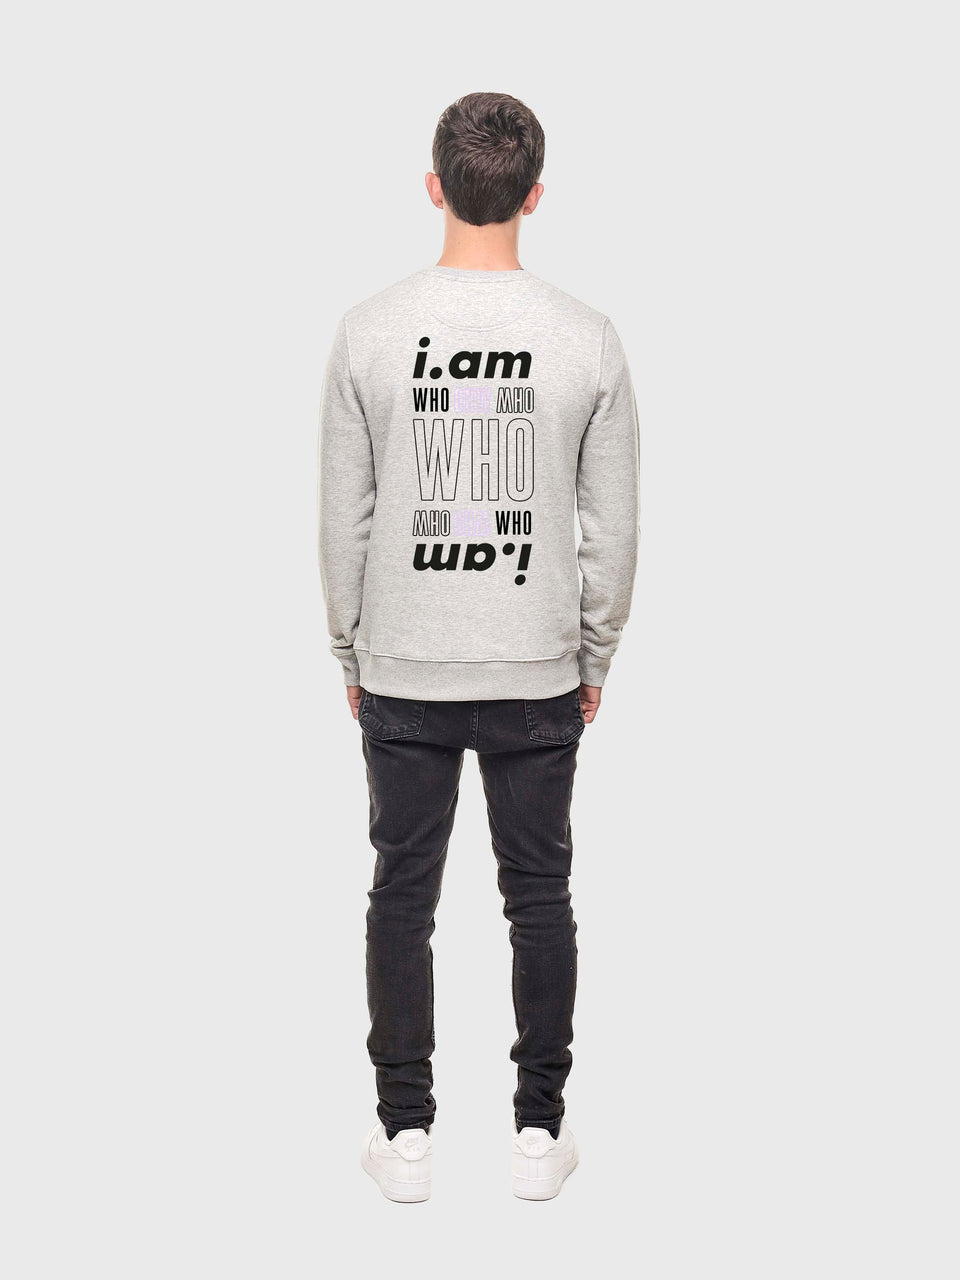 I am who I am - Grey - Unisex sweatshirt